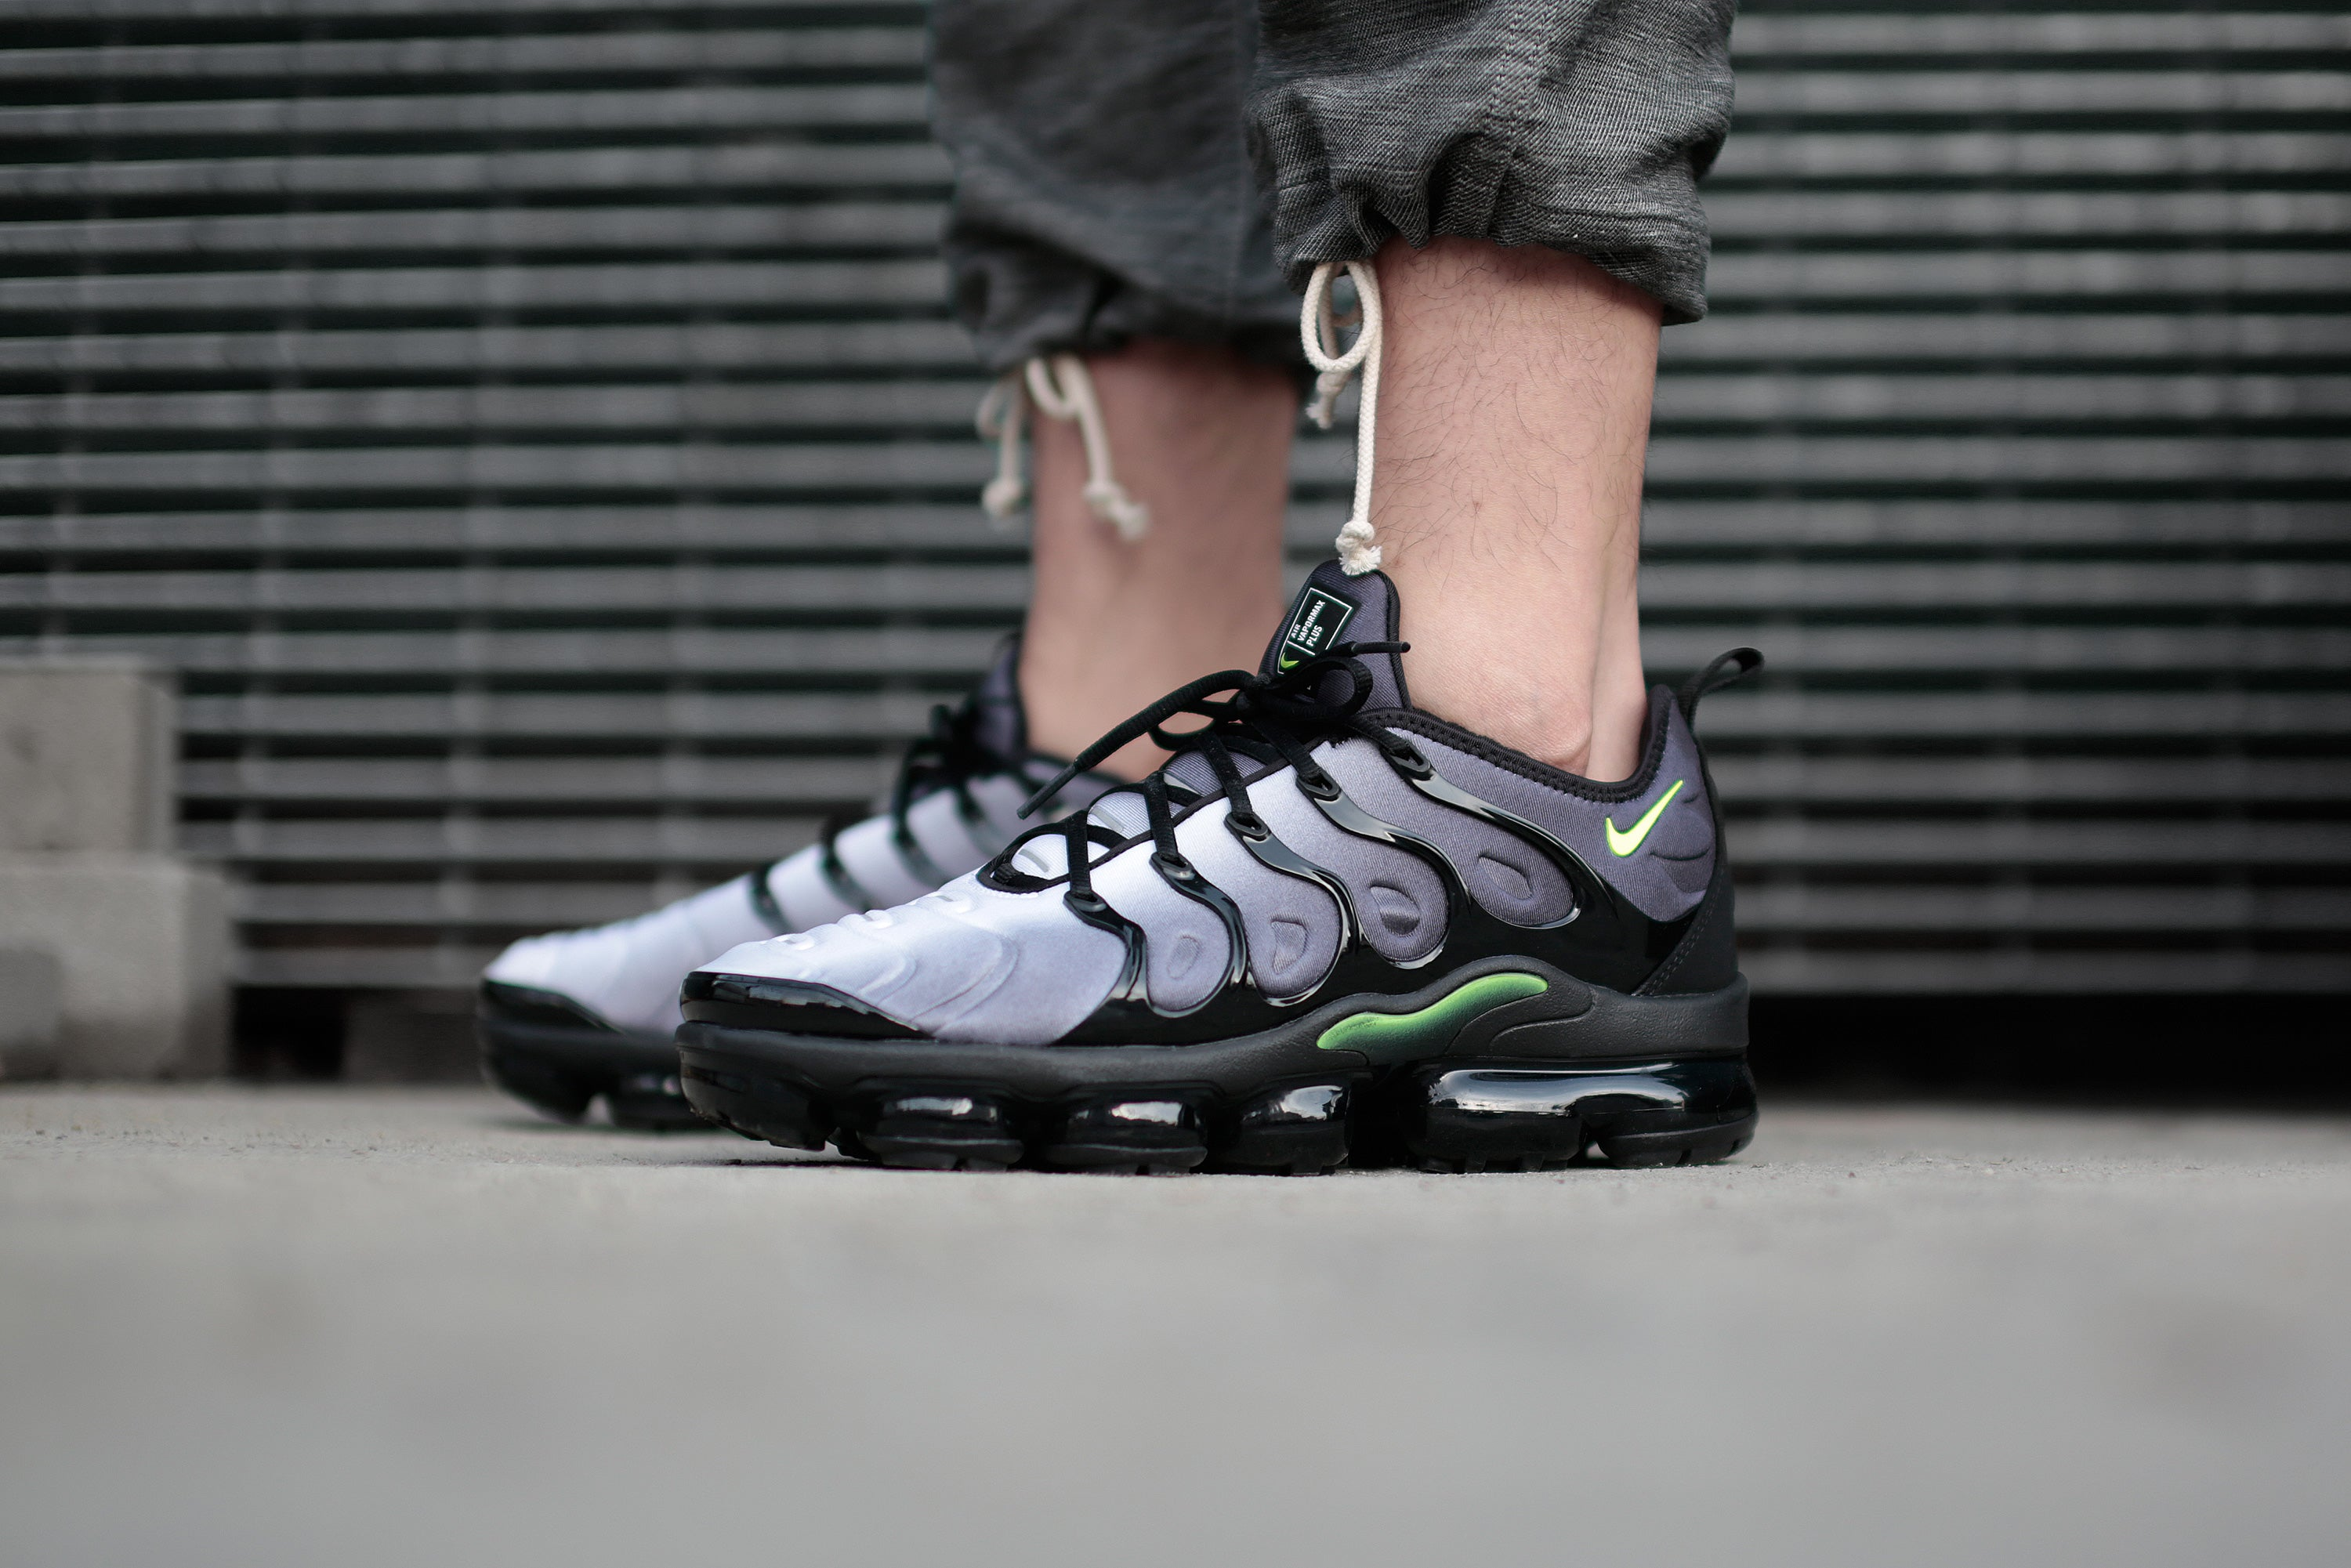 3e72b0a3f5fb Nike Vapormax Plus - Black Volt - Releasing 4 6